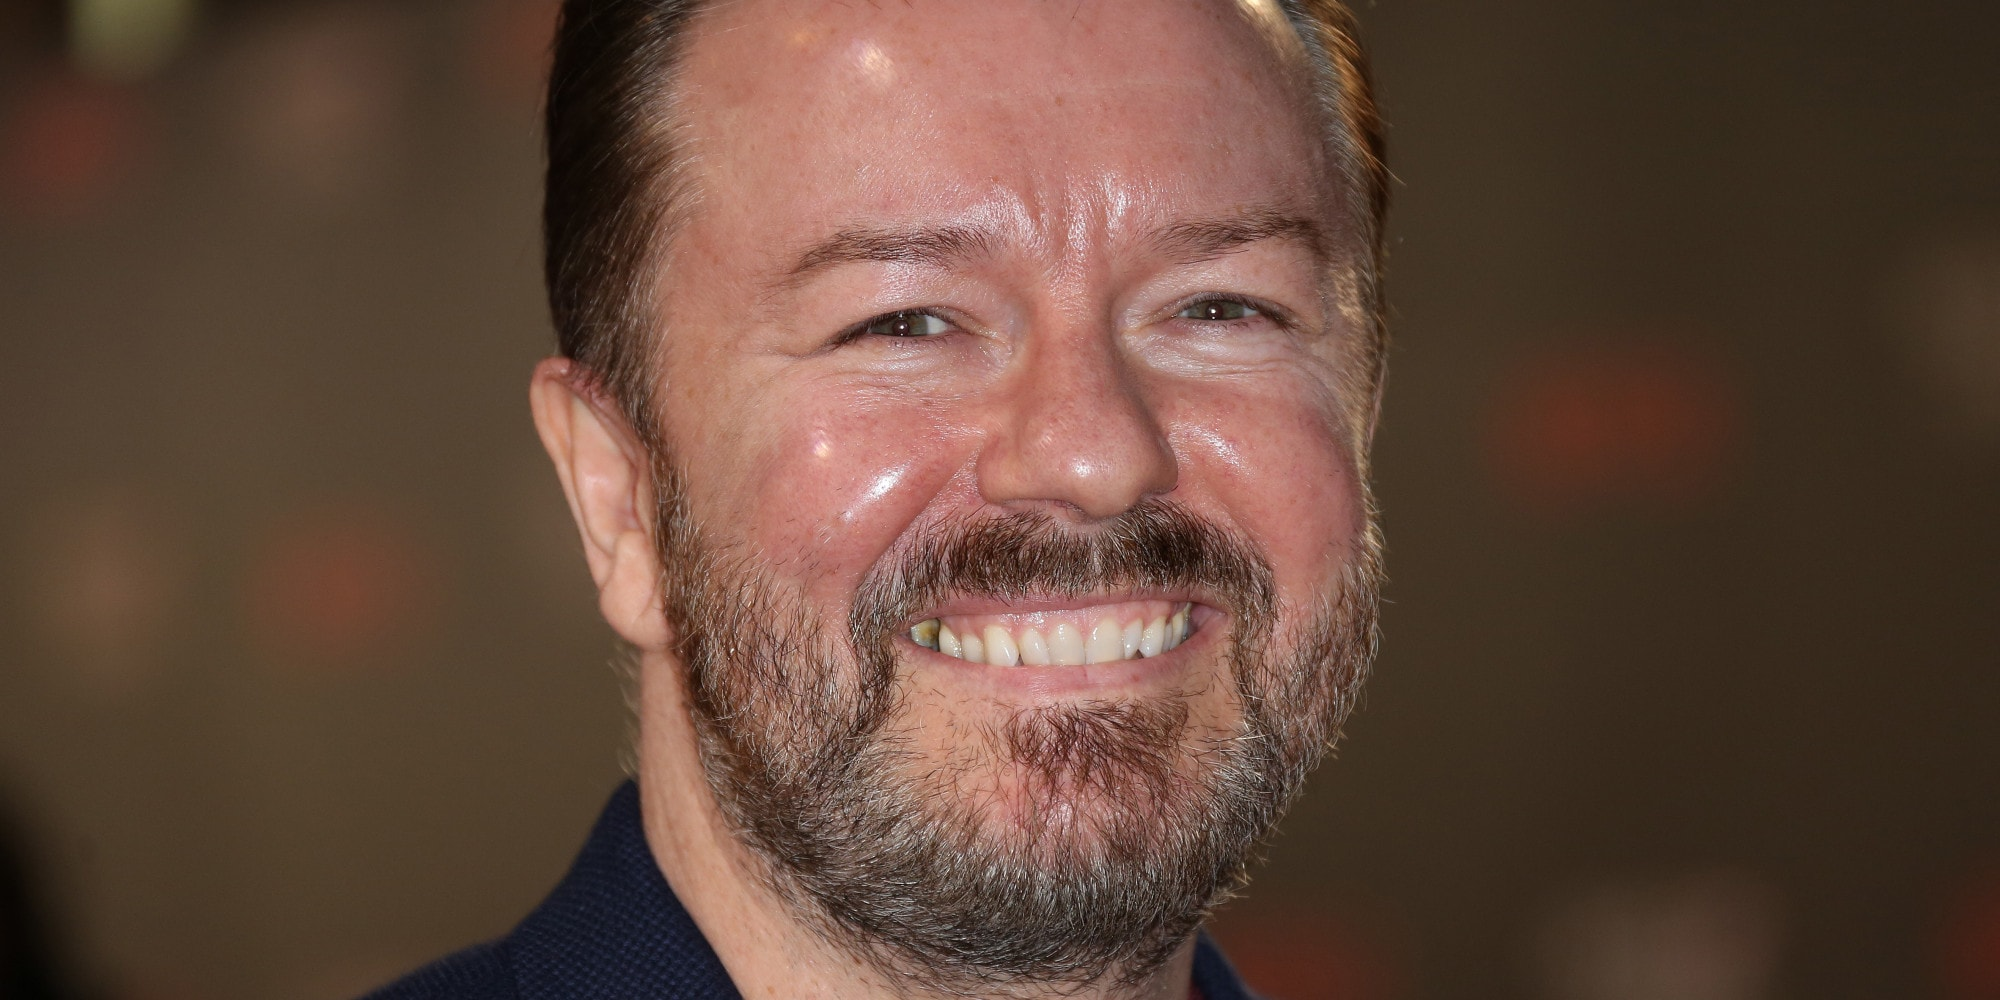 Ricky Gervais Full hd wallpapers